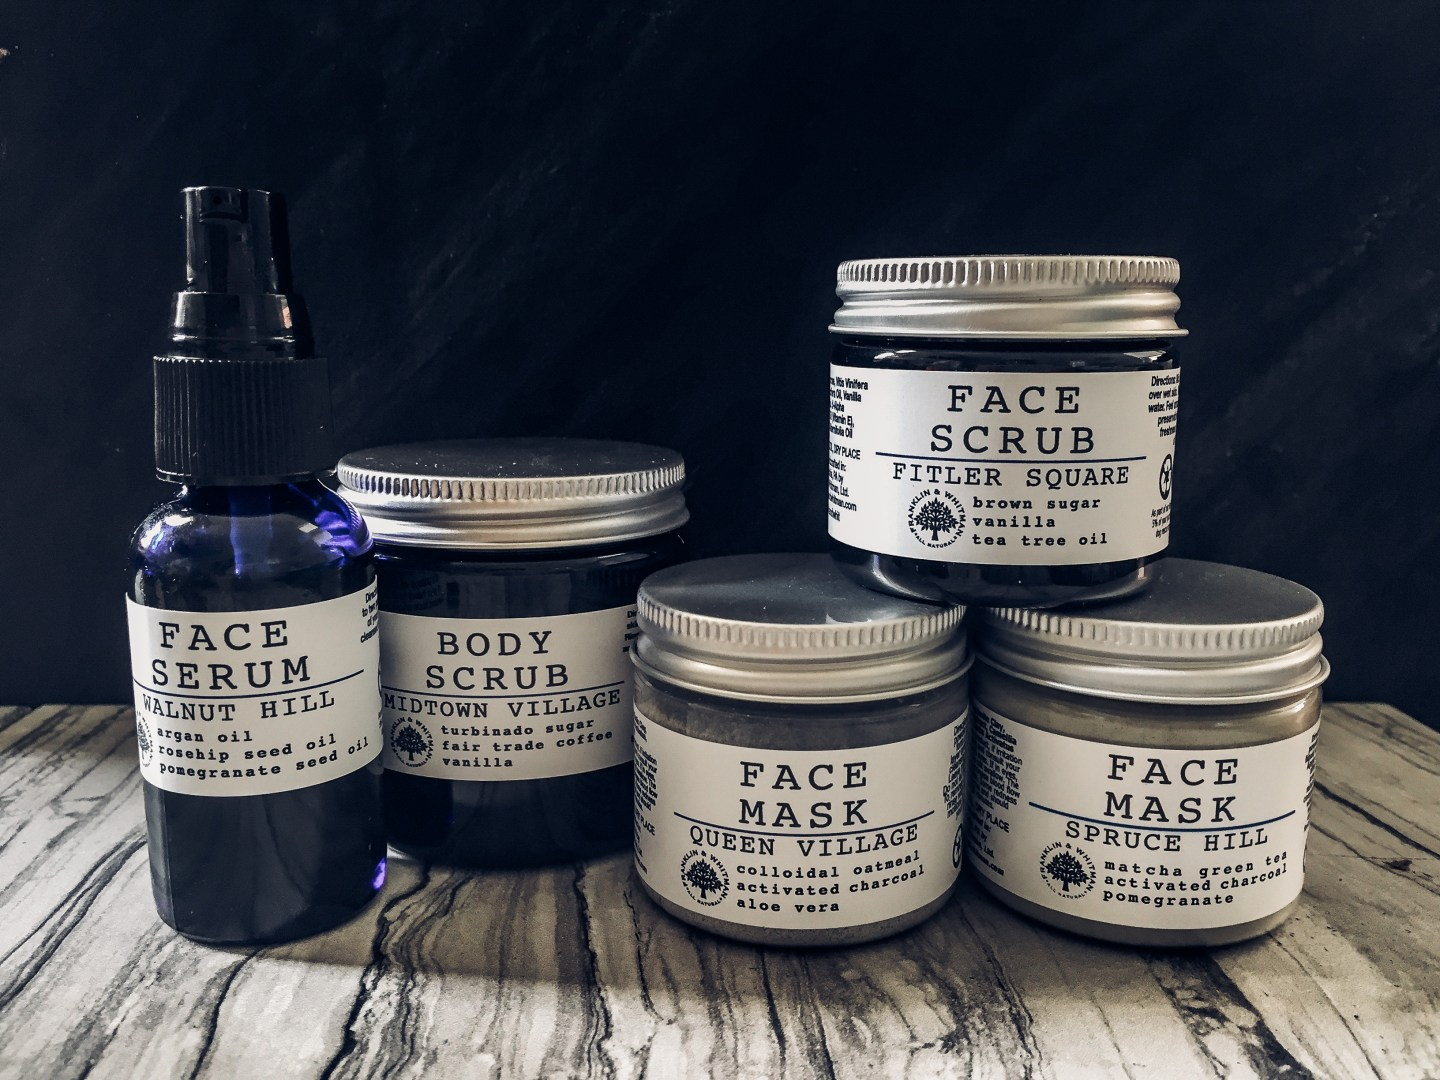 Frank and Whitman Beauty Products